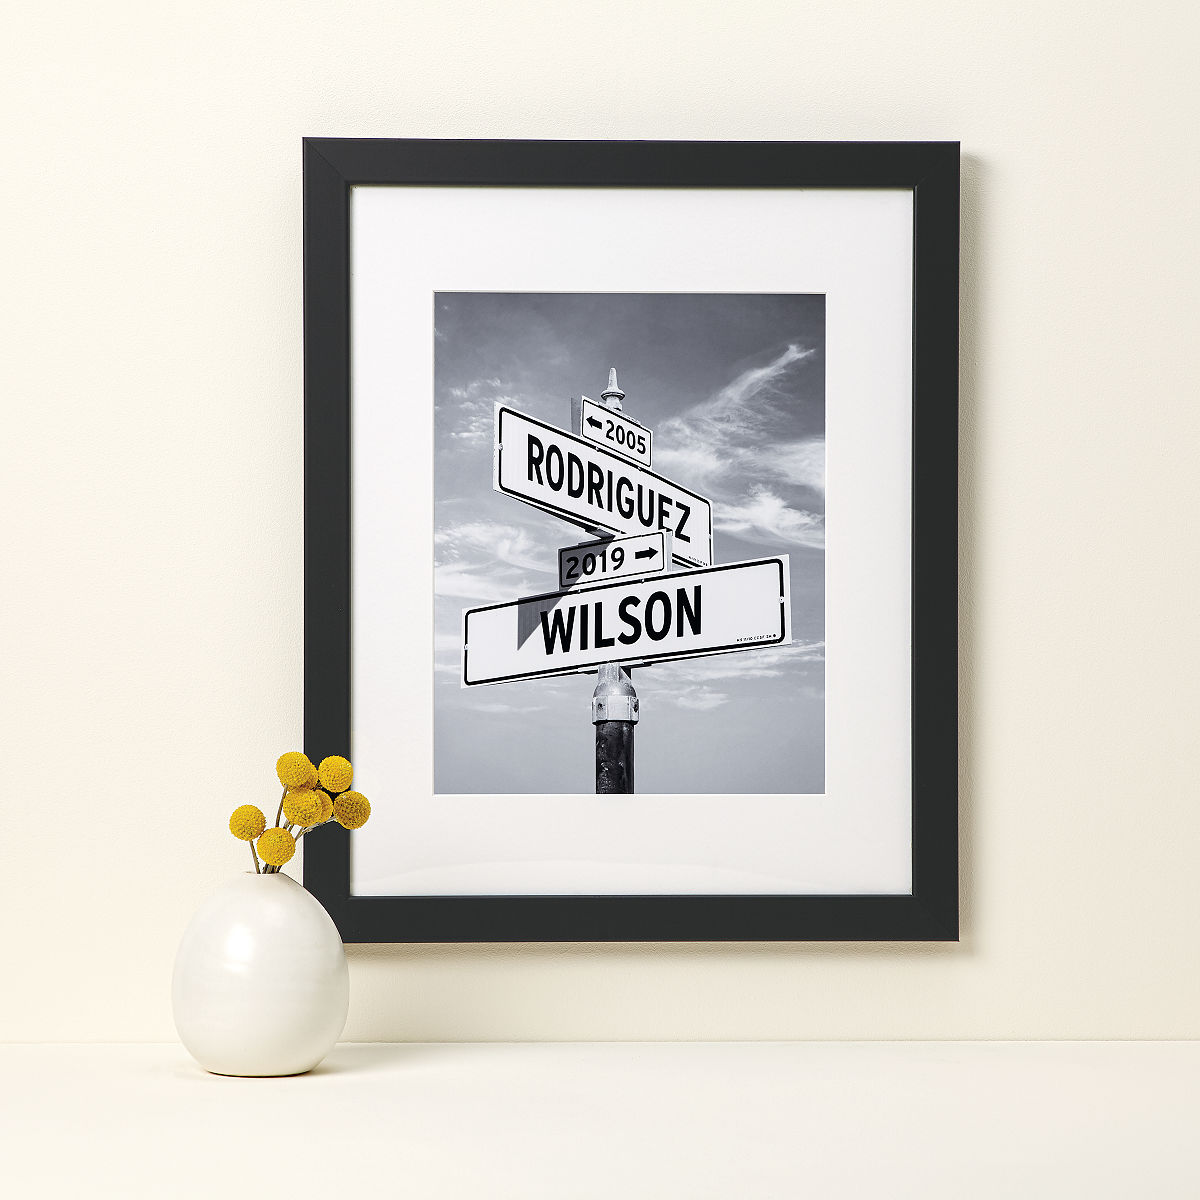 Unique Wedding Gifts For Couples: Intersection Of Love - Photo Print